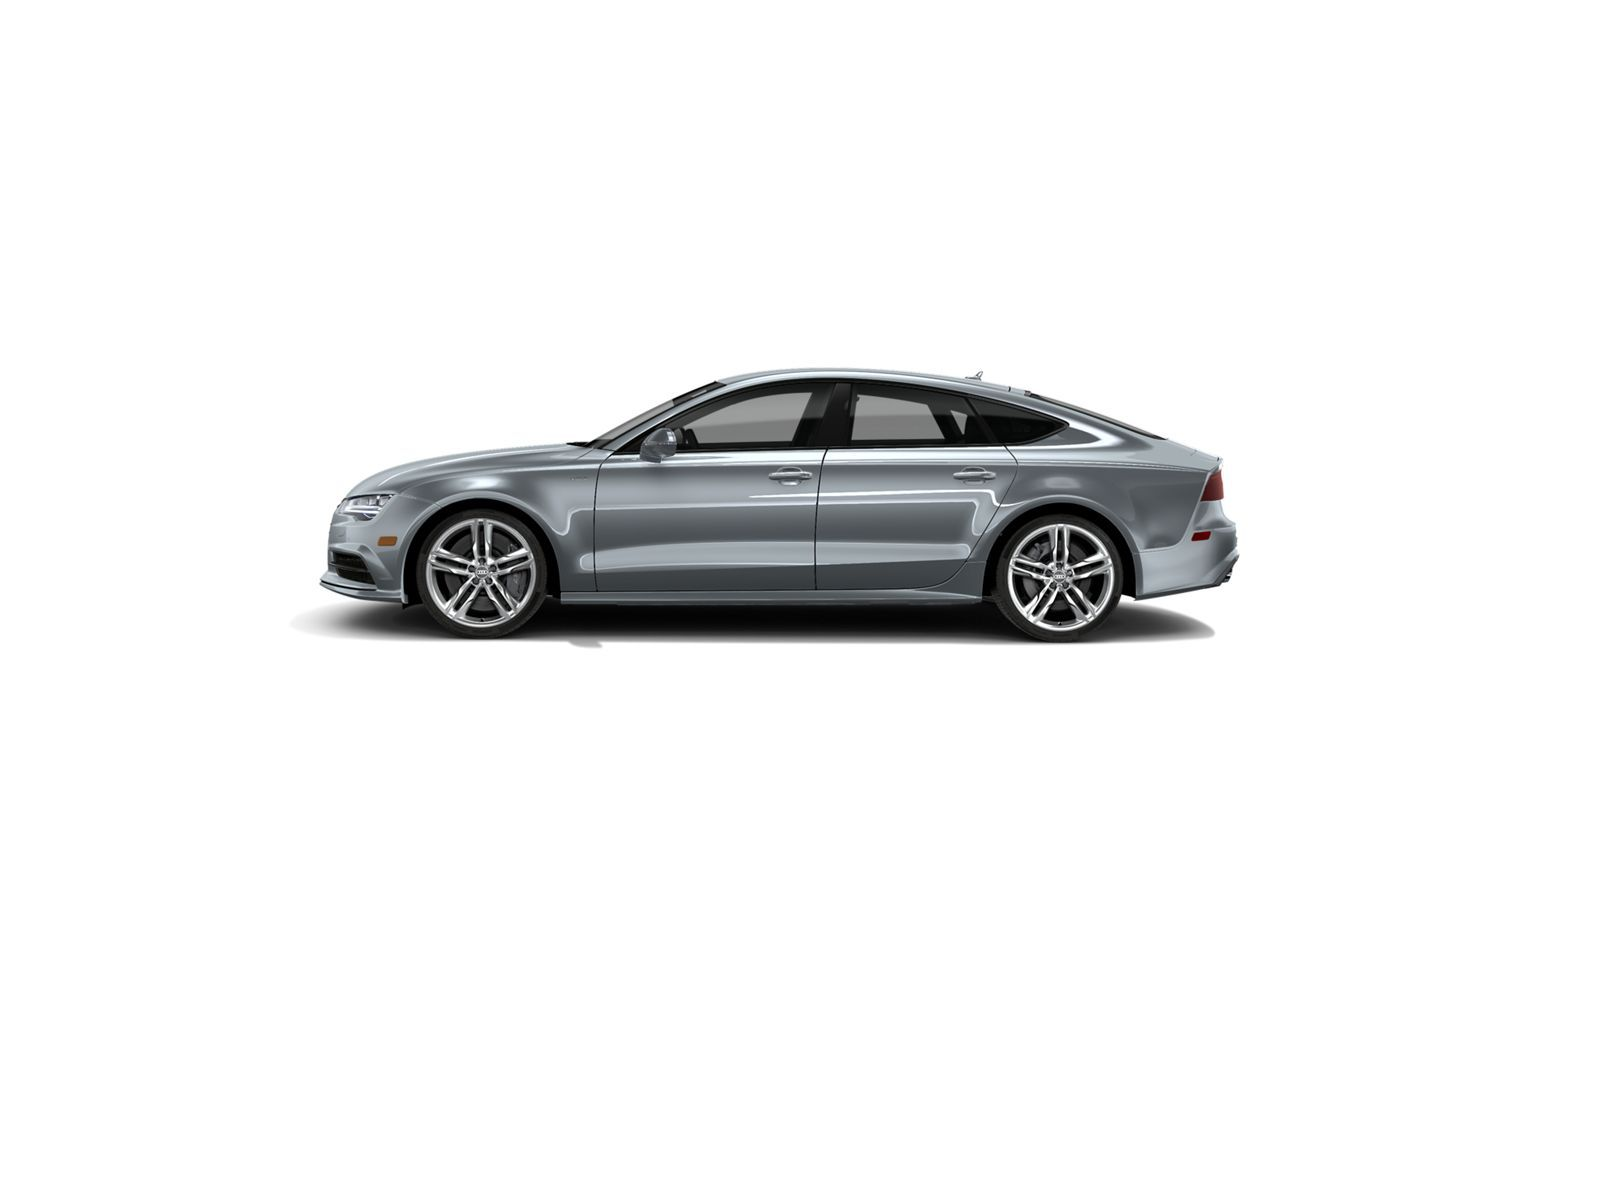 Audi Build Your Own >> Build Your Own Audi S7 Sedan Car Configurator Audi Usa